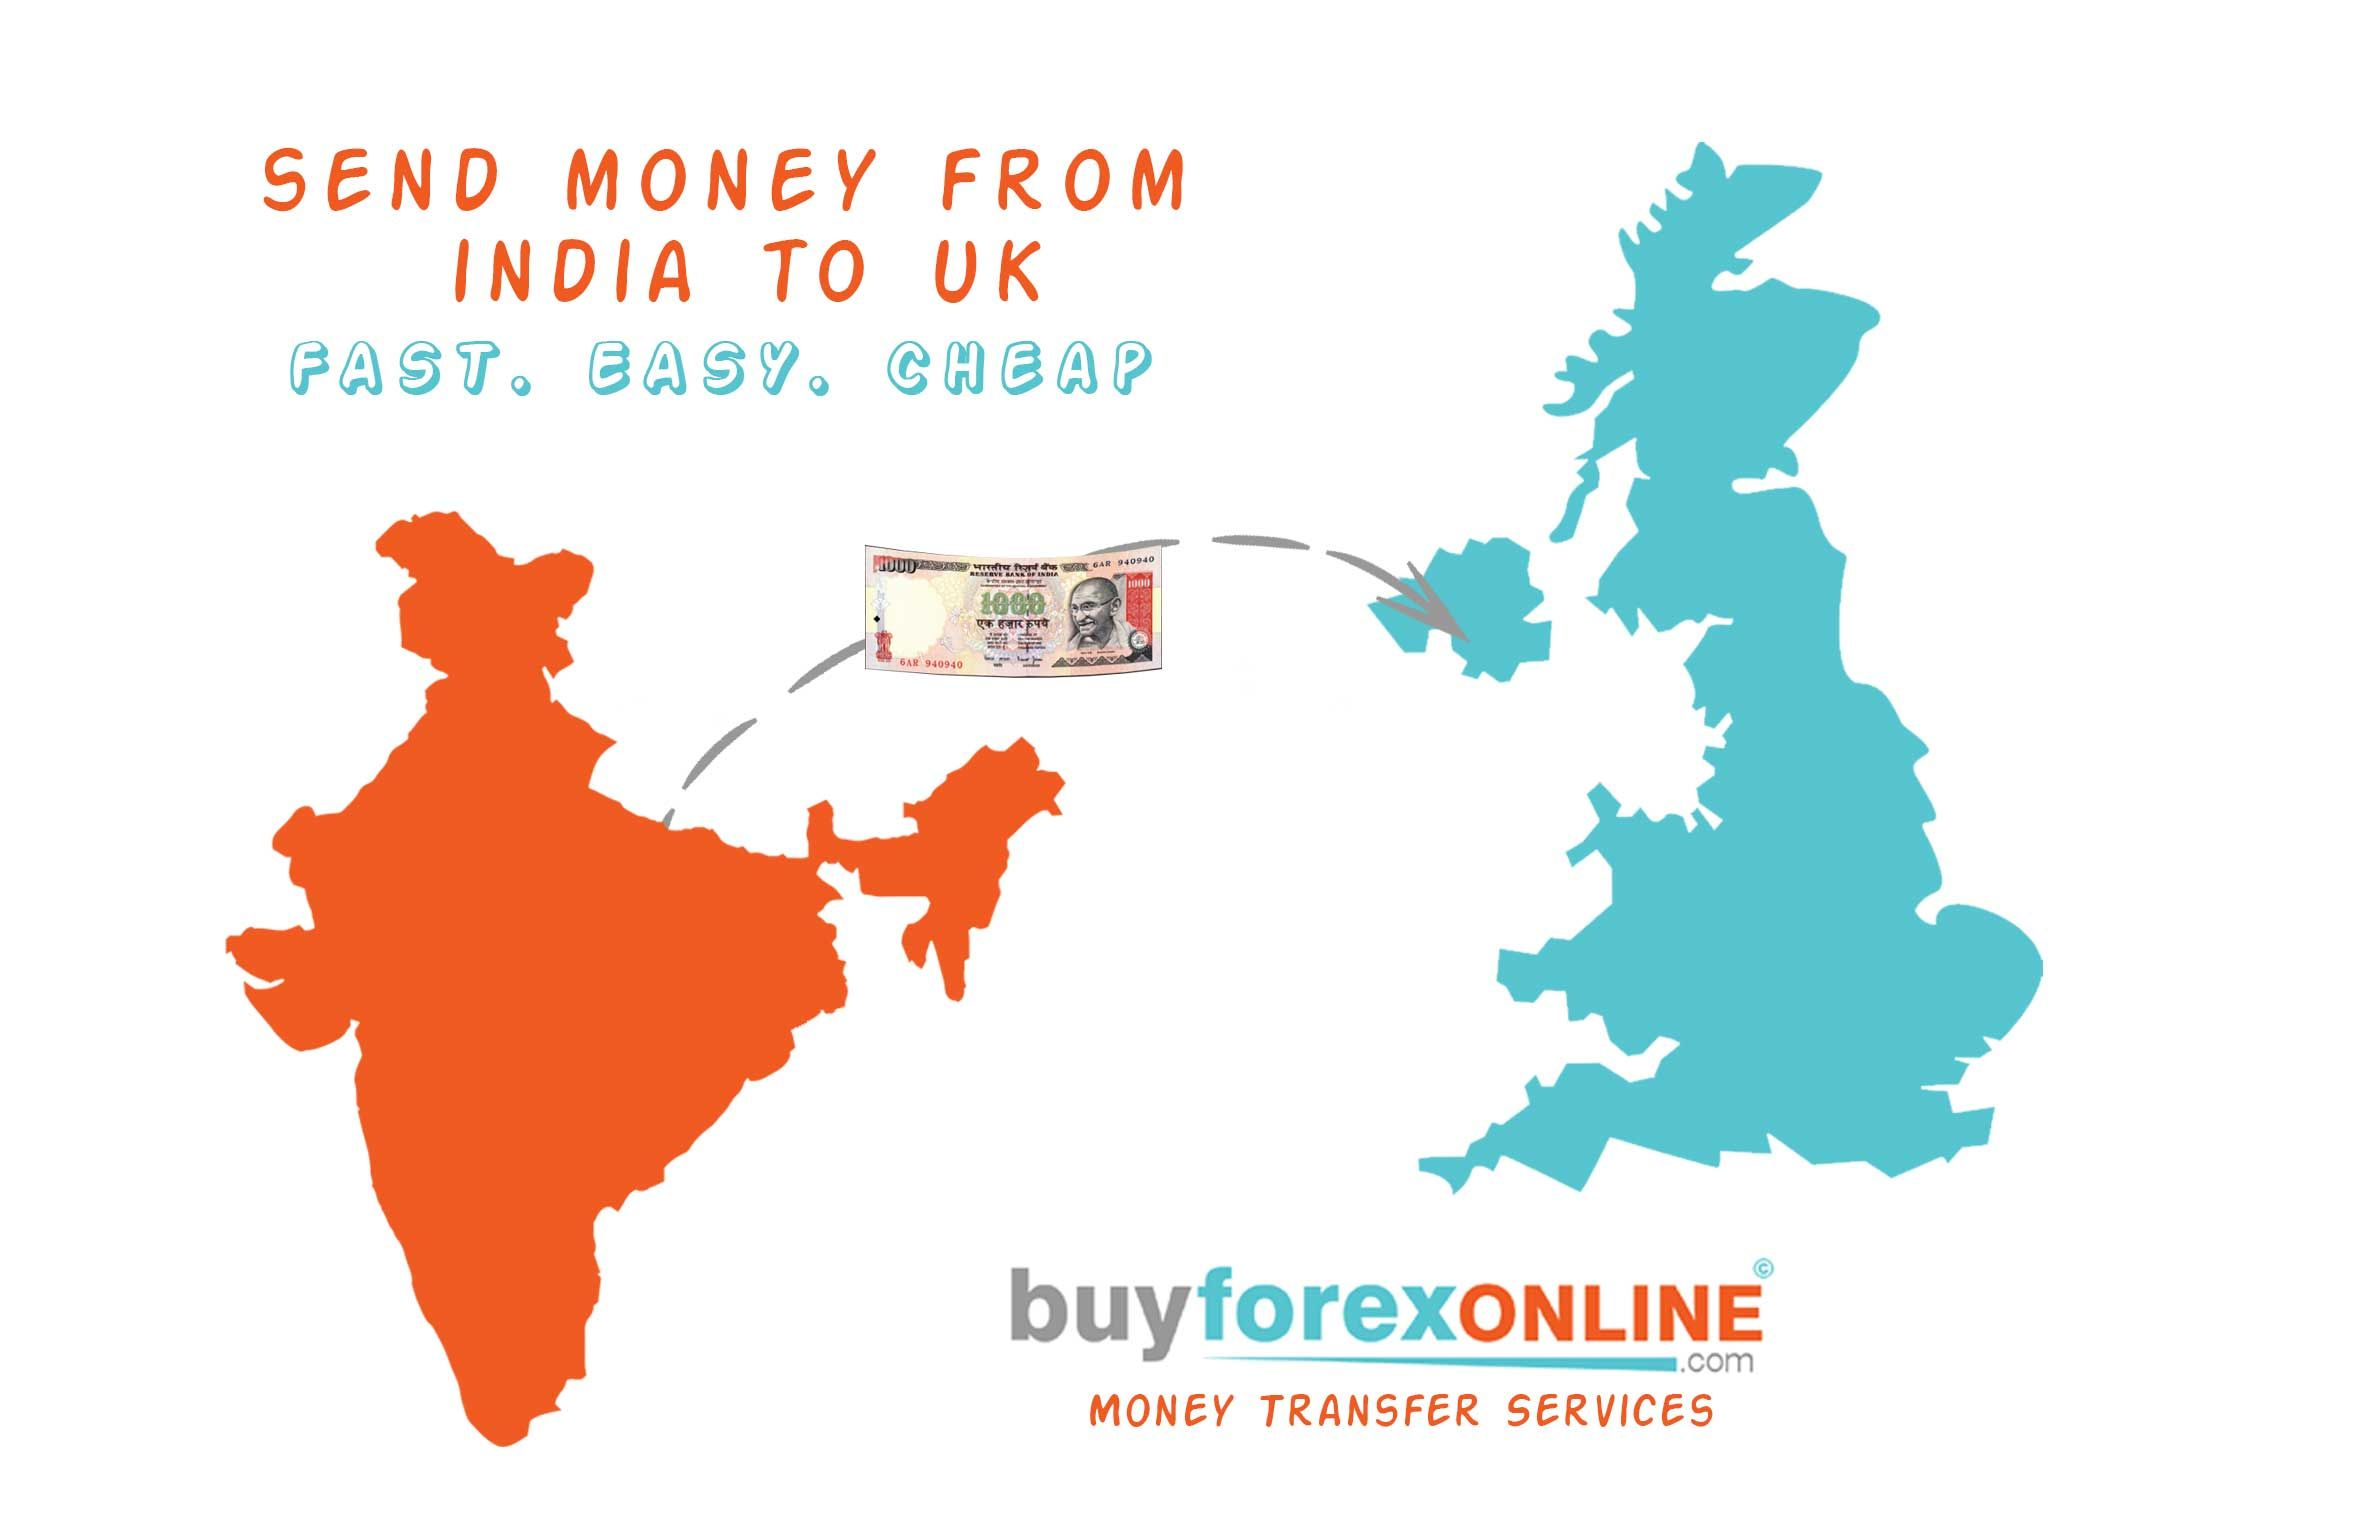 Avail The Best Send Money Service To Uk With Just A Clicks They Offer Instant Services Online